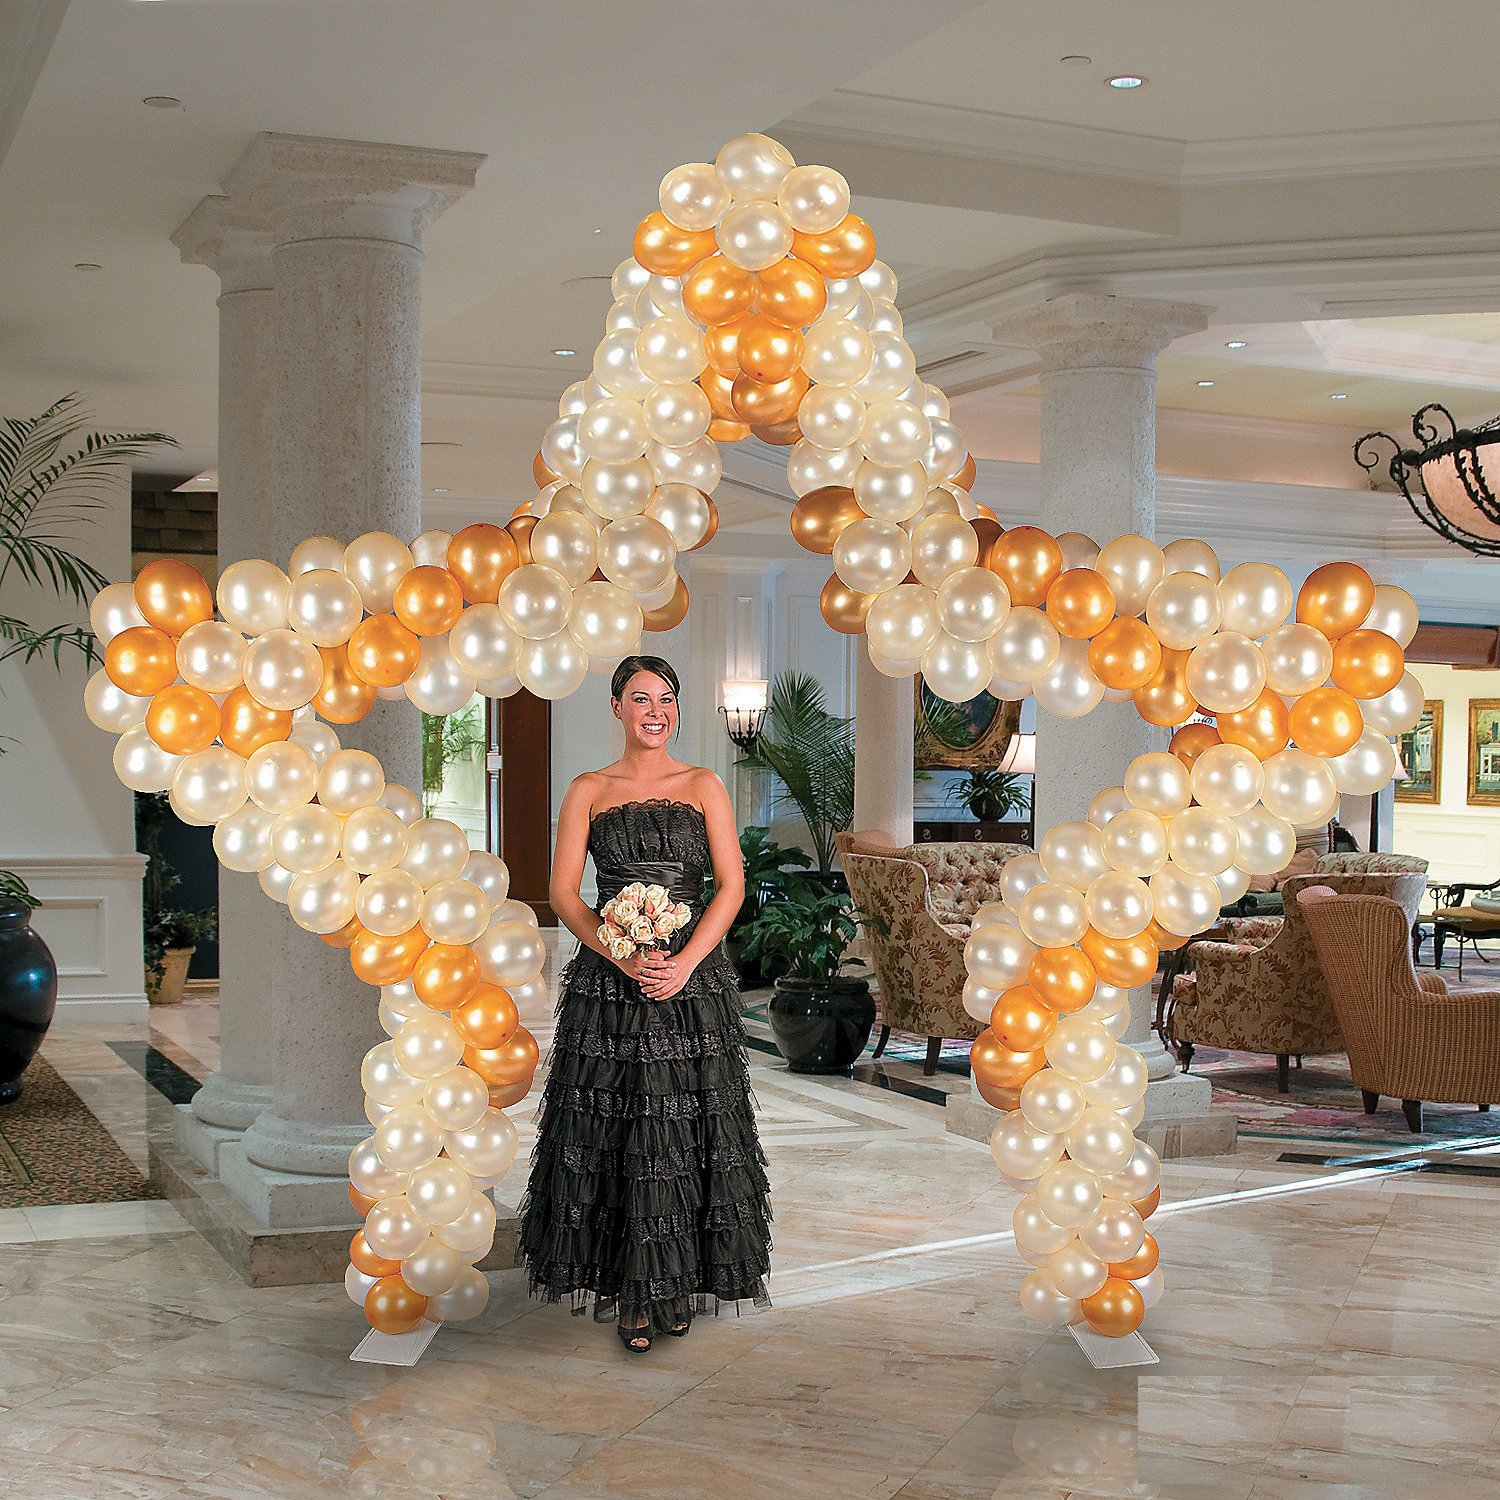 Star Balloon Arch Frame (11 Ft.)- Balloons & Balloon Accessories by Fun Express